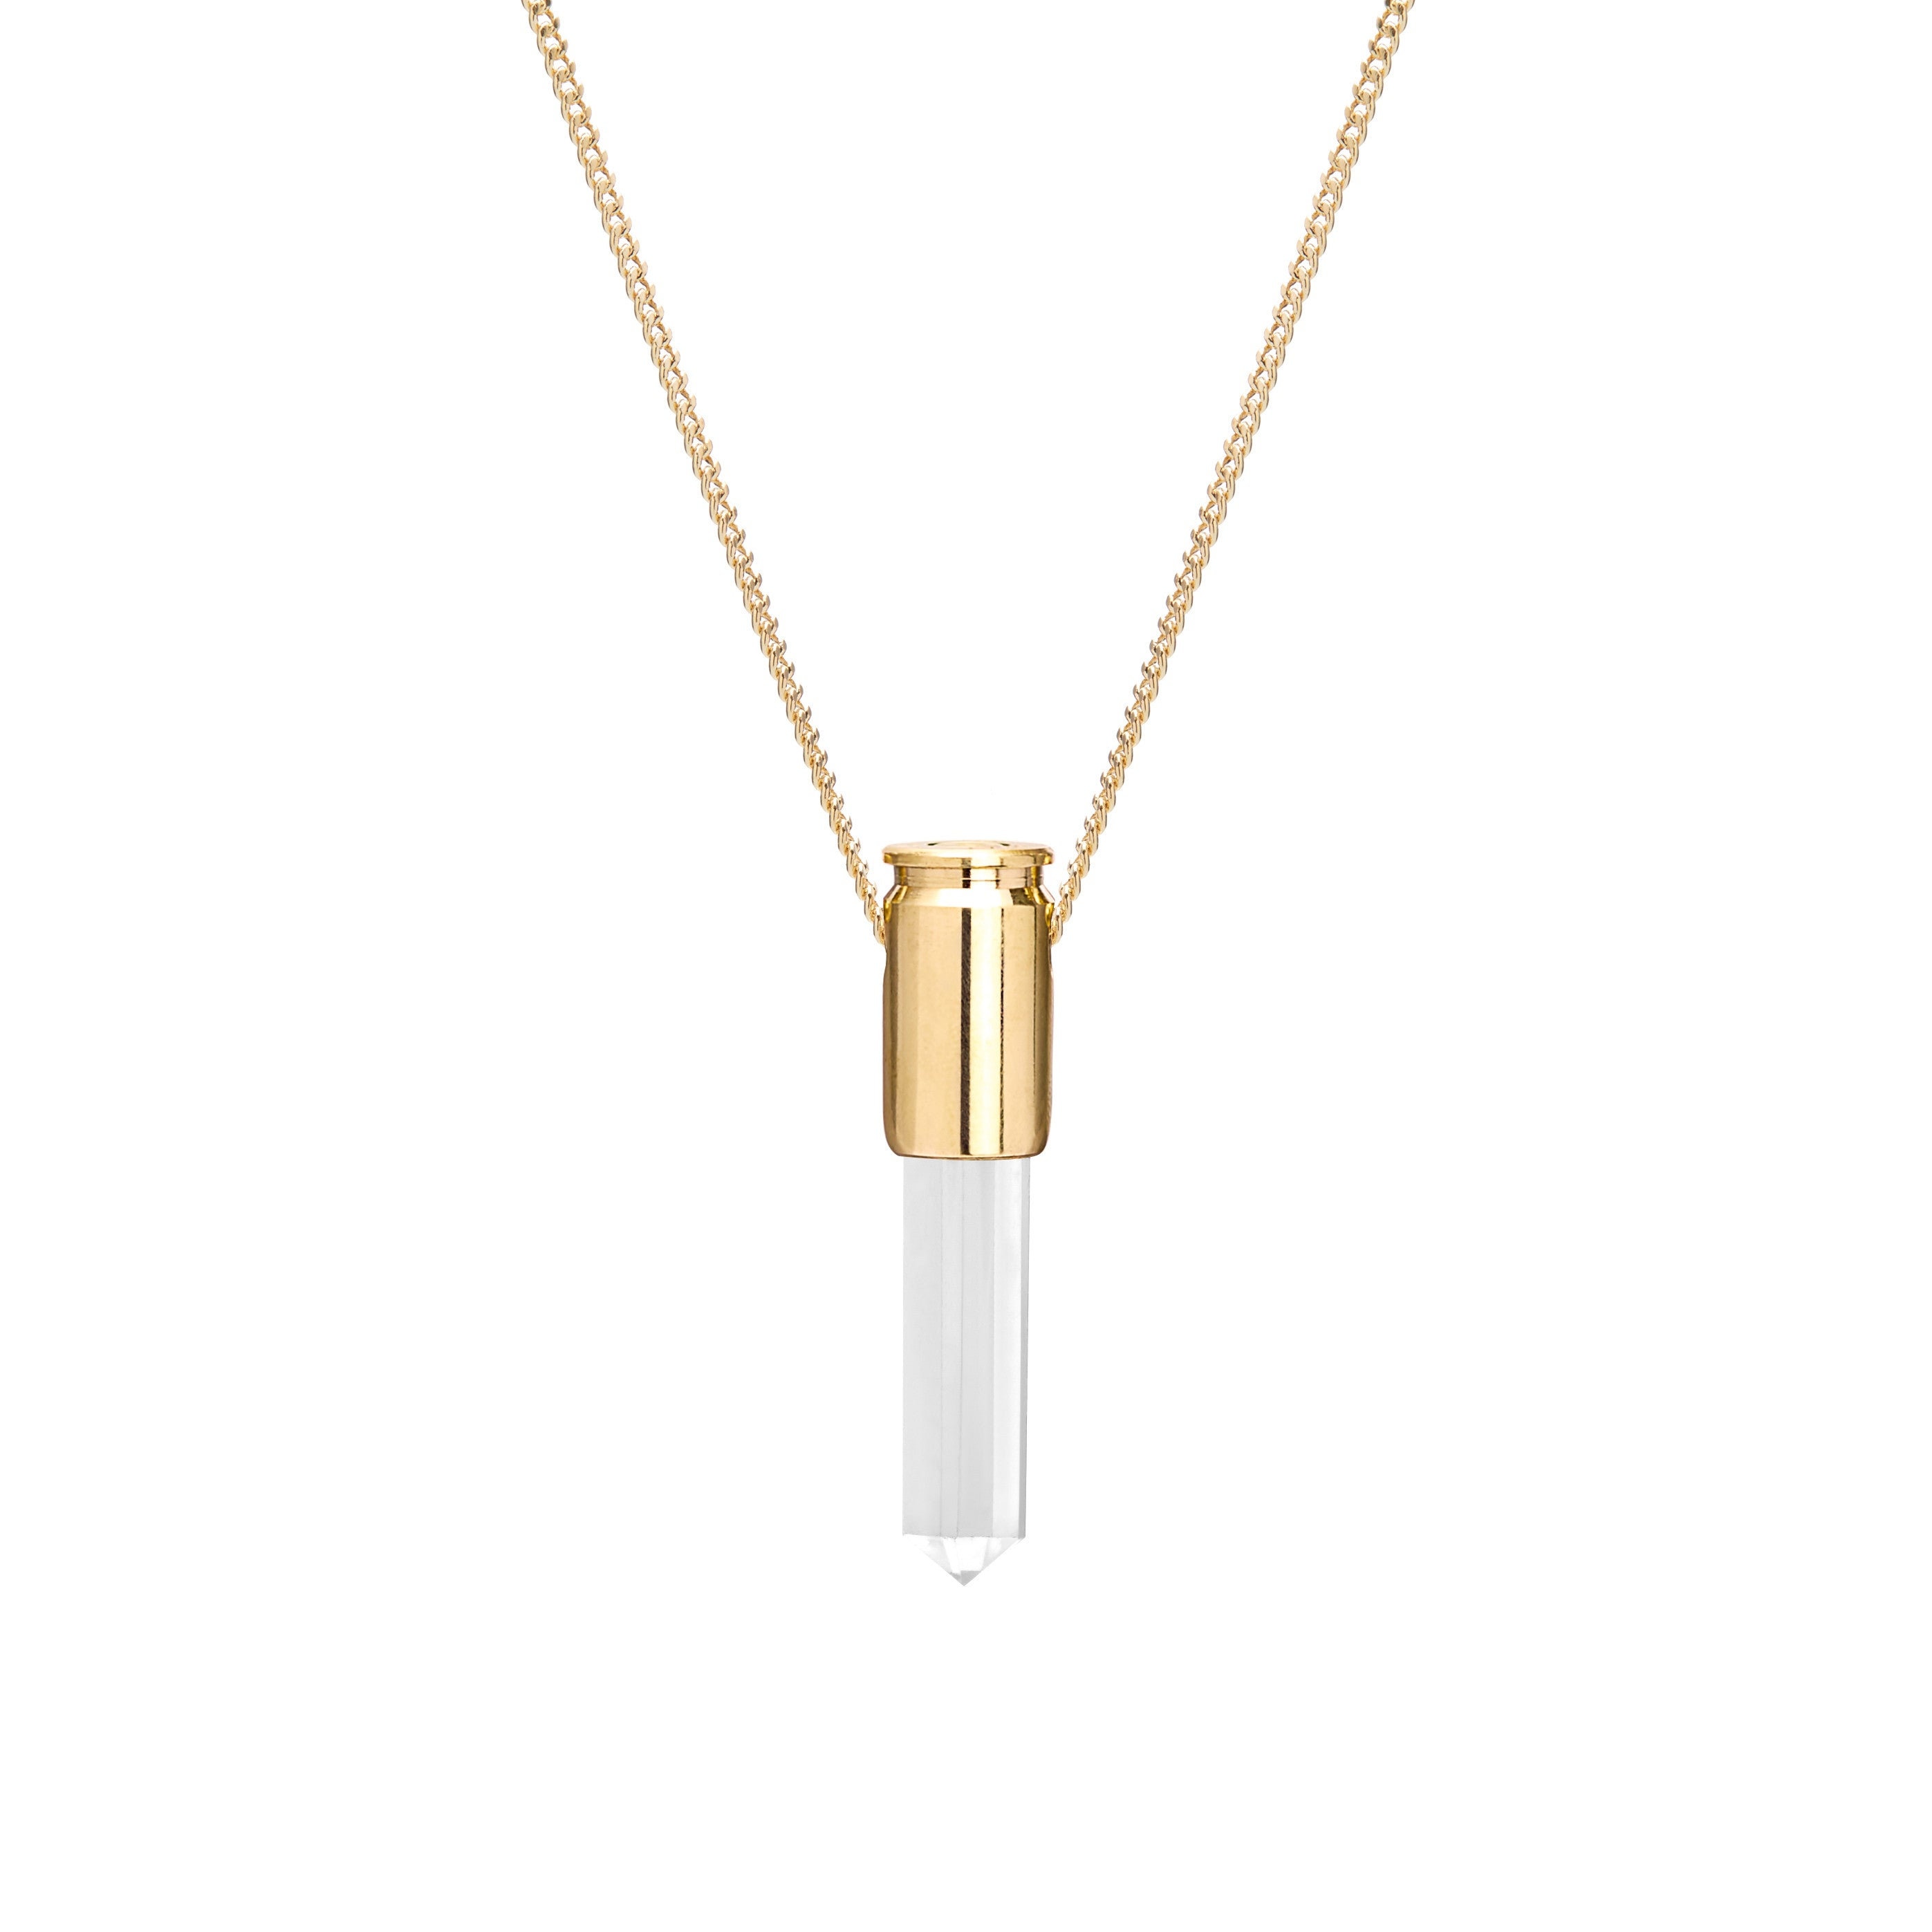 wanderlustlife cord life wanderlust necklace fine products clear quartz